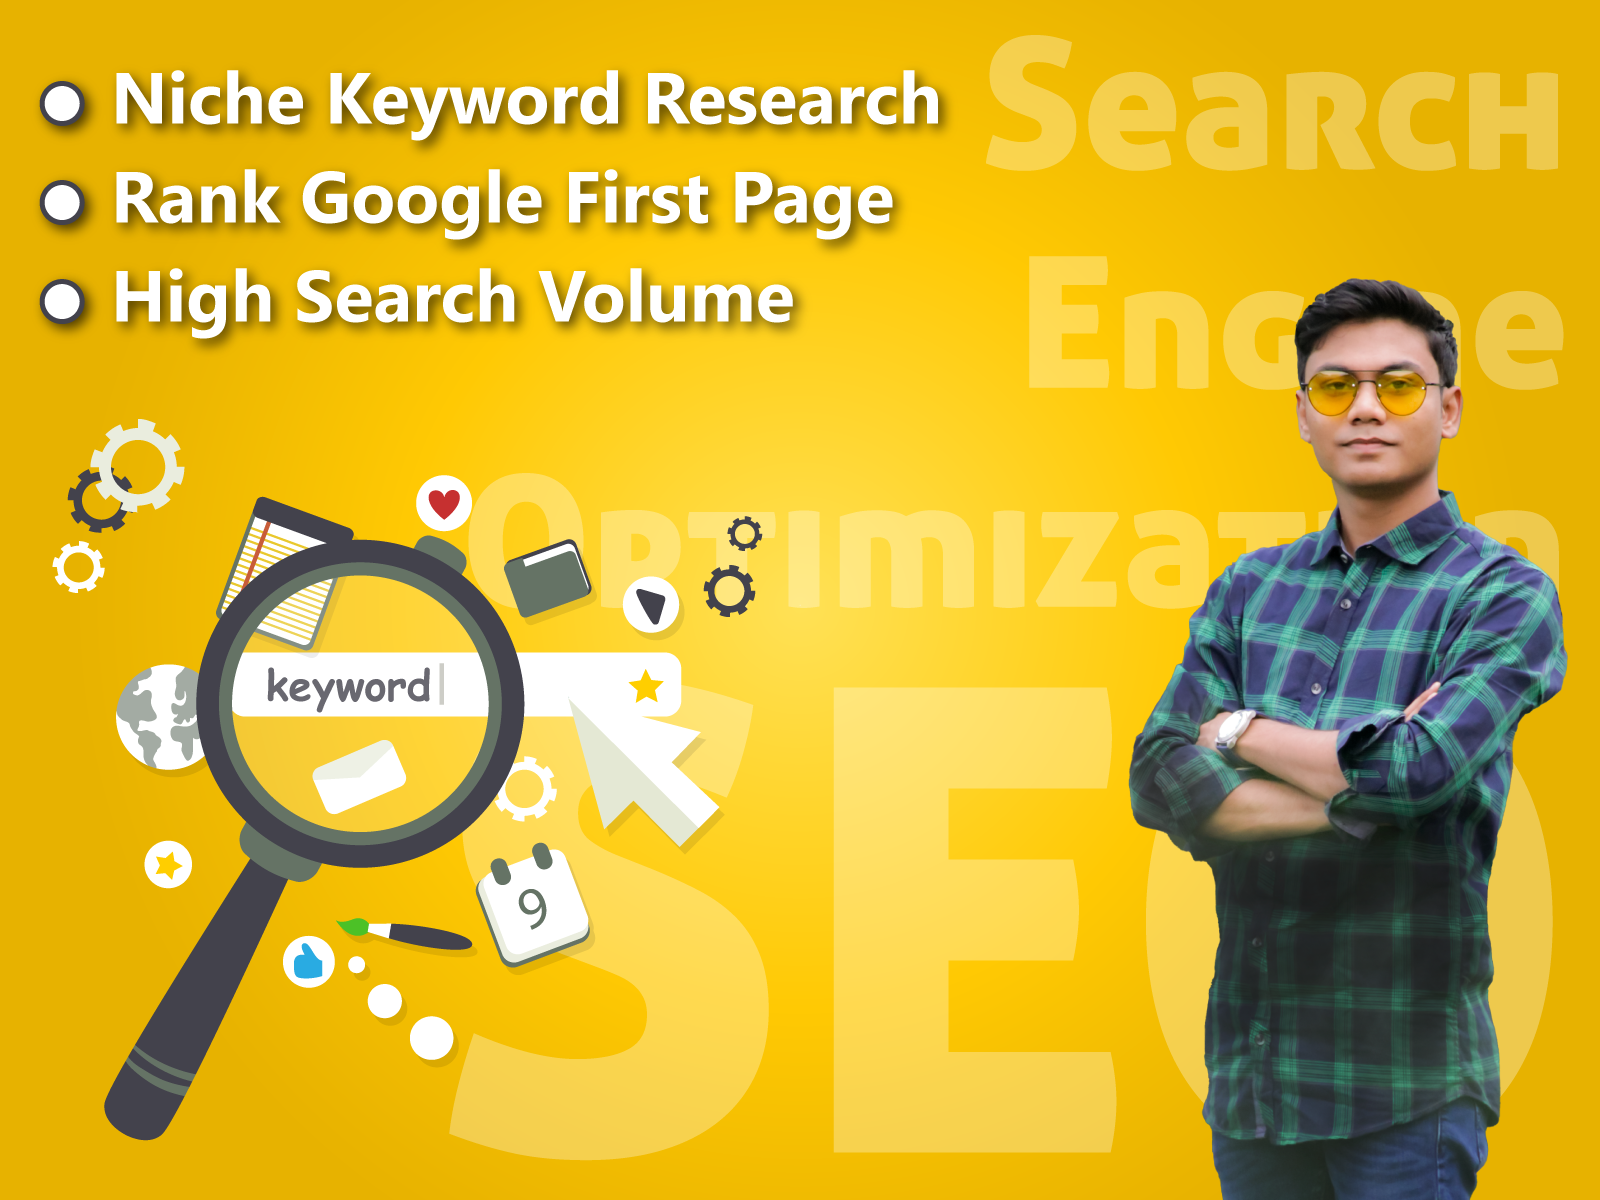 SEO Keyword Research KGR and Google Ranking Strategy